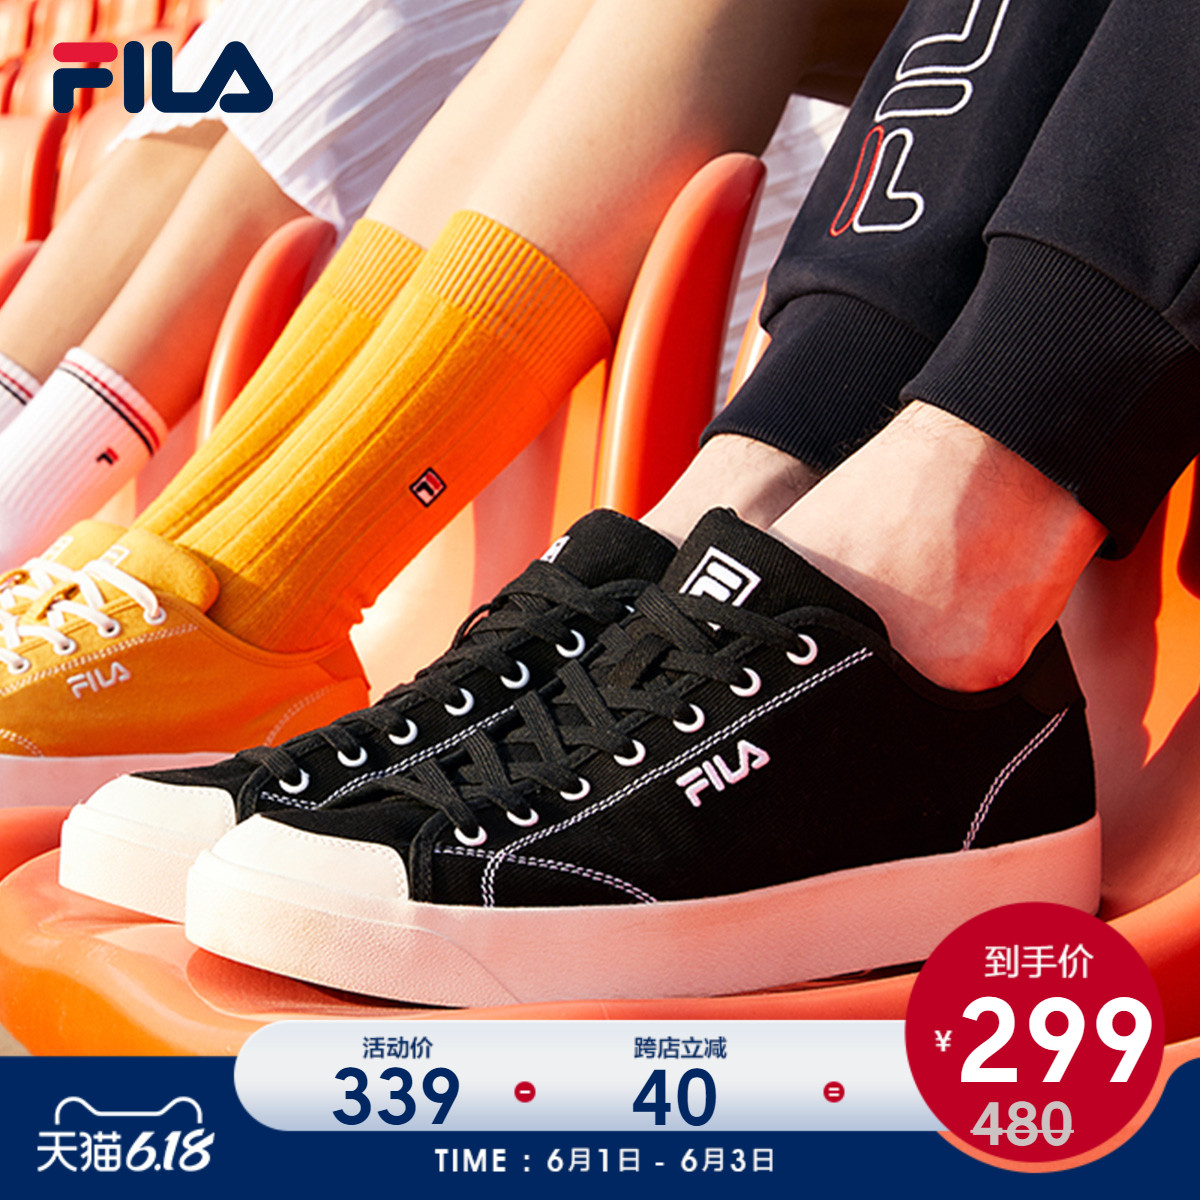 FILA velo canvas shoes black women's shoes men's shoes small white shoes board shoes couple casual shoes new in spring and summer 2020